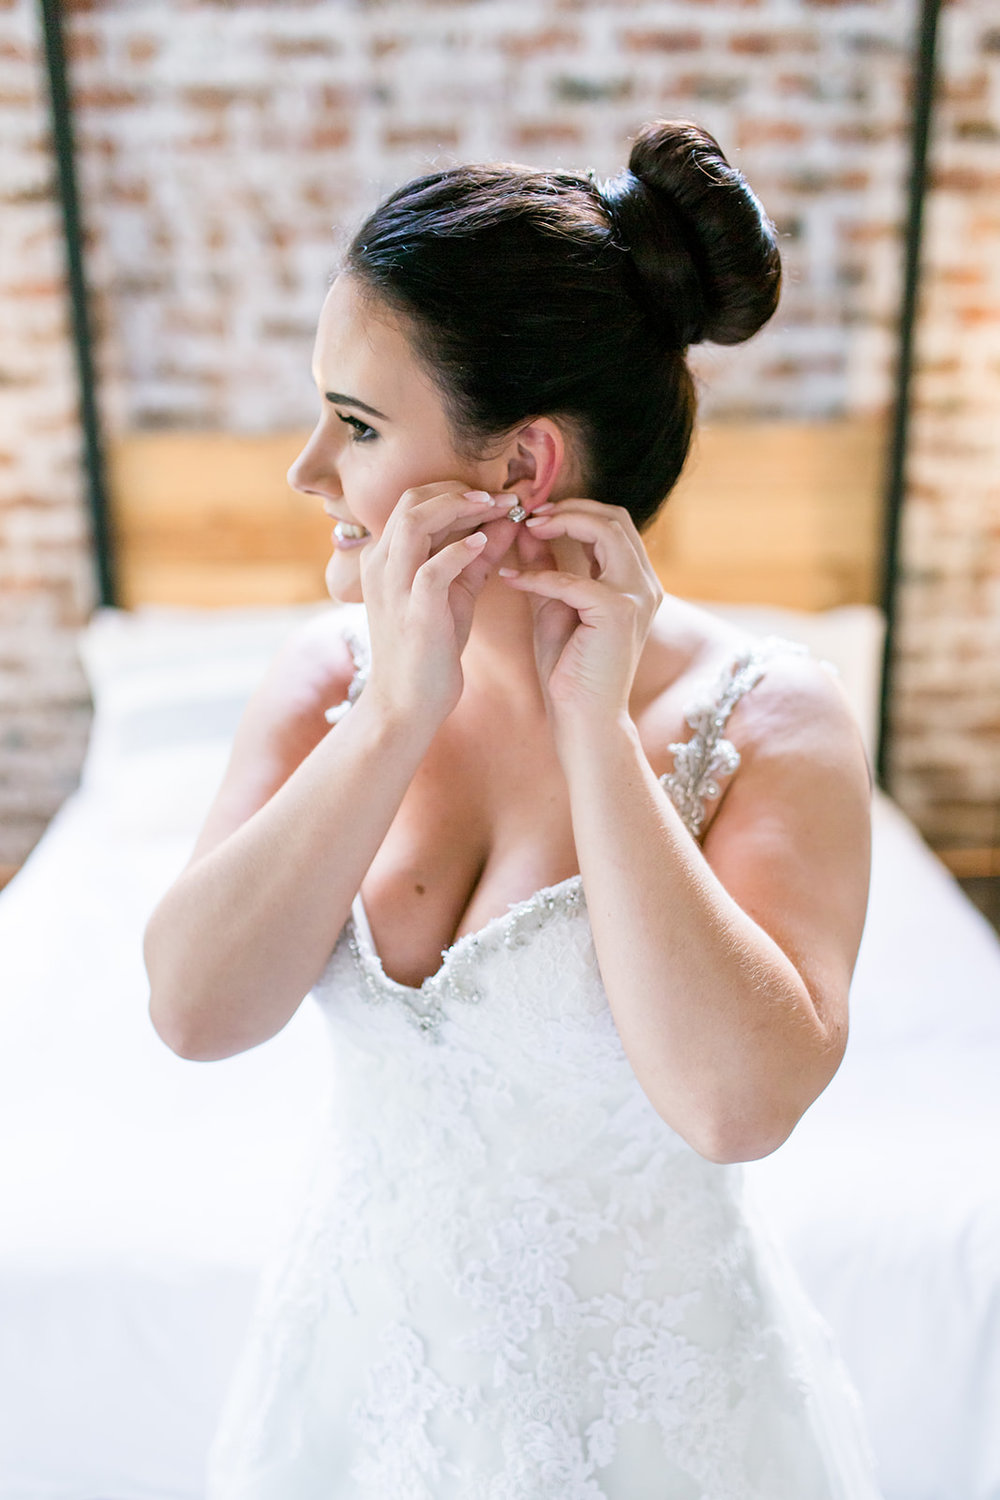 Lace on Timber Pretoria South Africa Wedding - The Overwhelmed Bride Wedding BlogLace on Timber Pretoria South Africa Wedding - The Overwhelmed Bride Wedding Blog